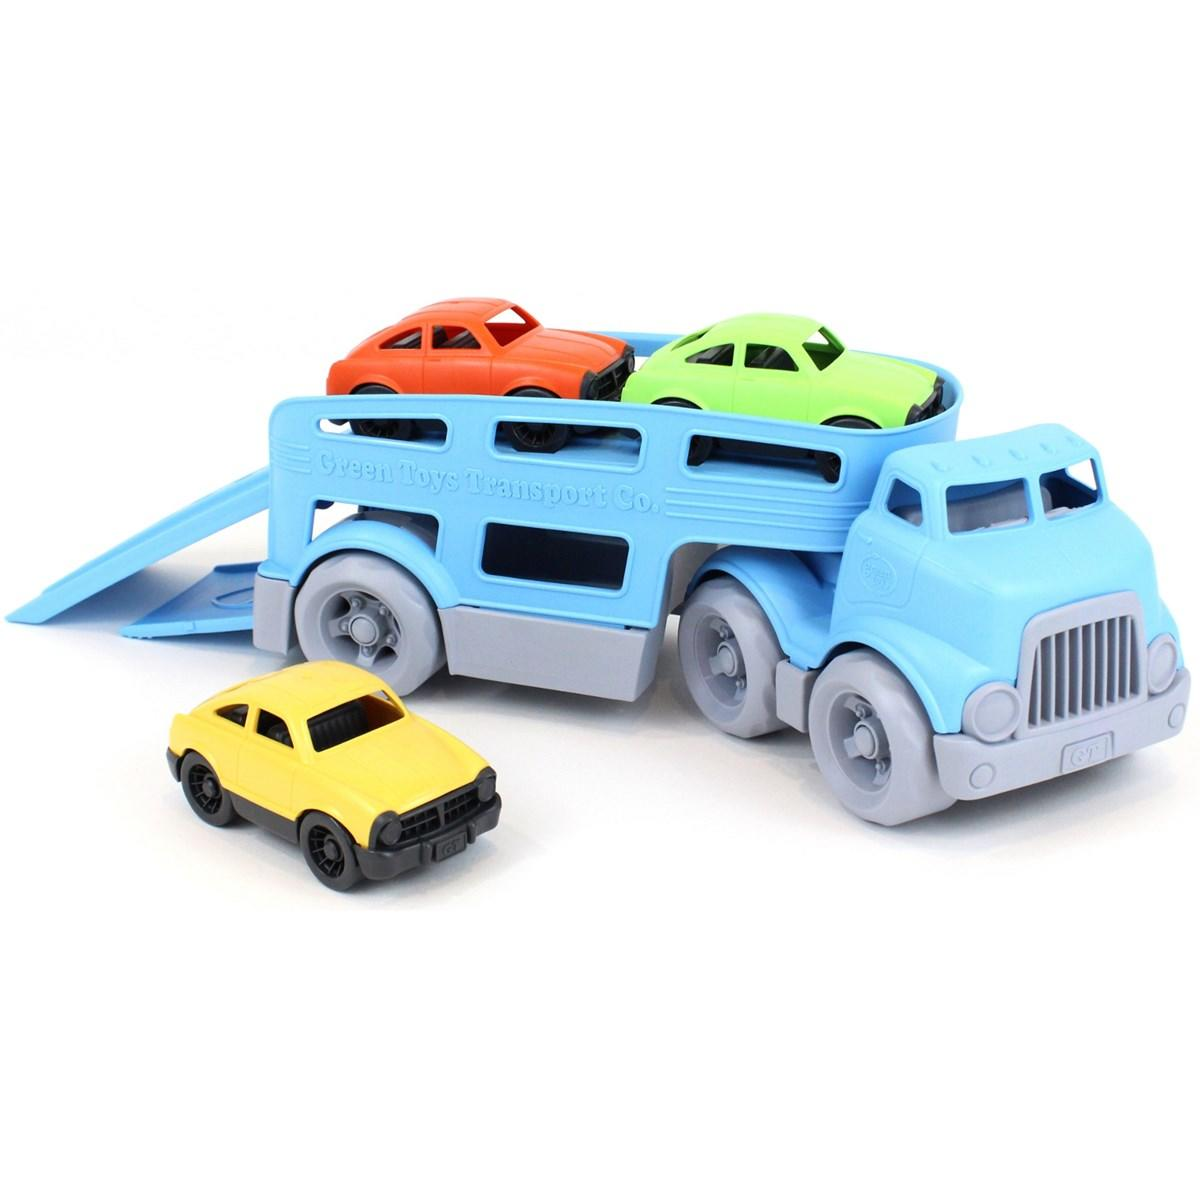 Blue car Transporter with 3 cars all made from recycled milk cartons